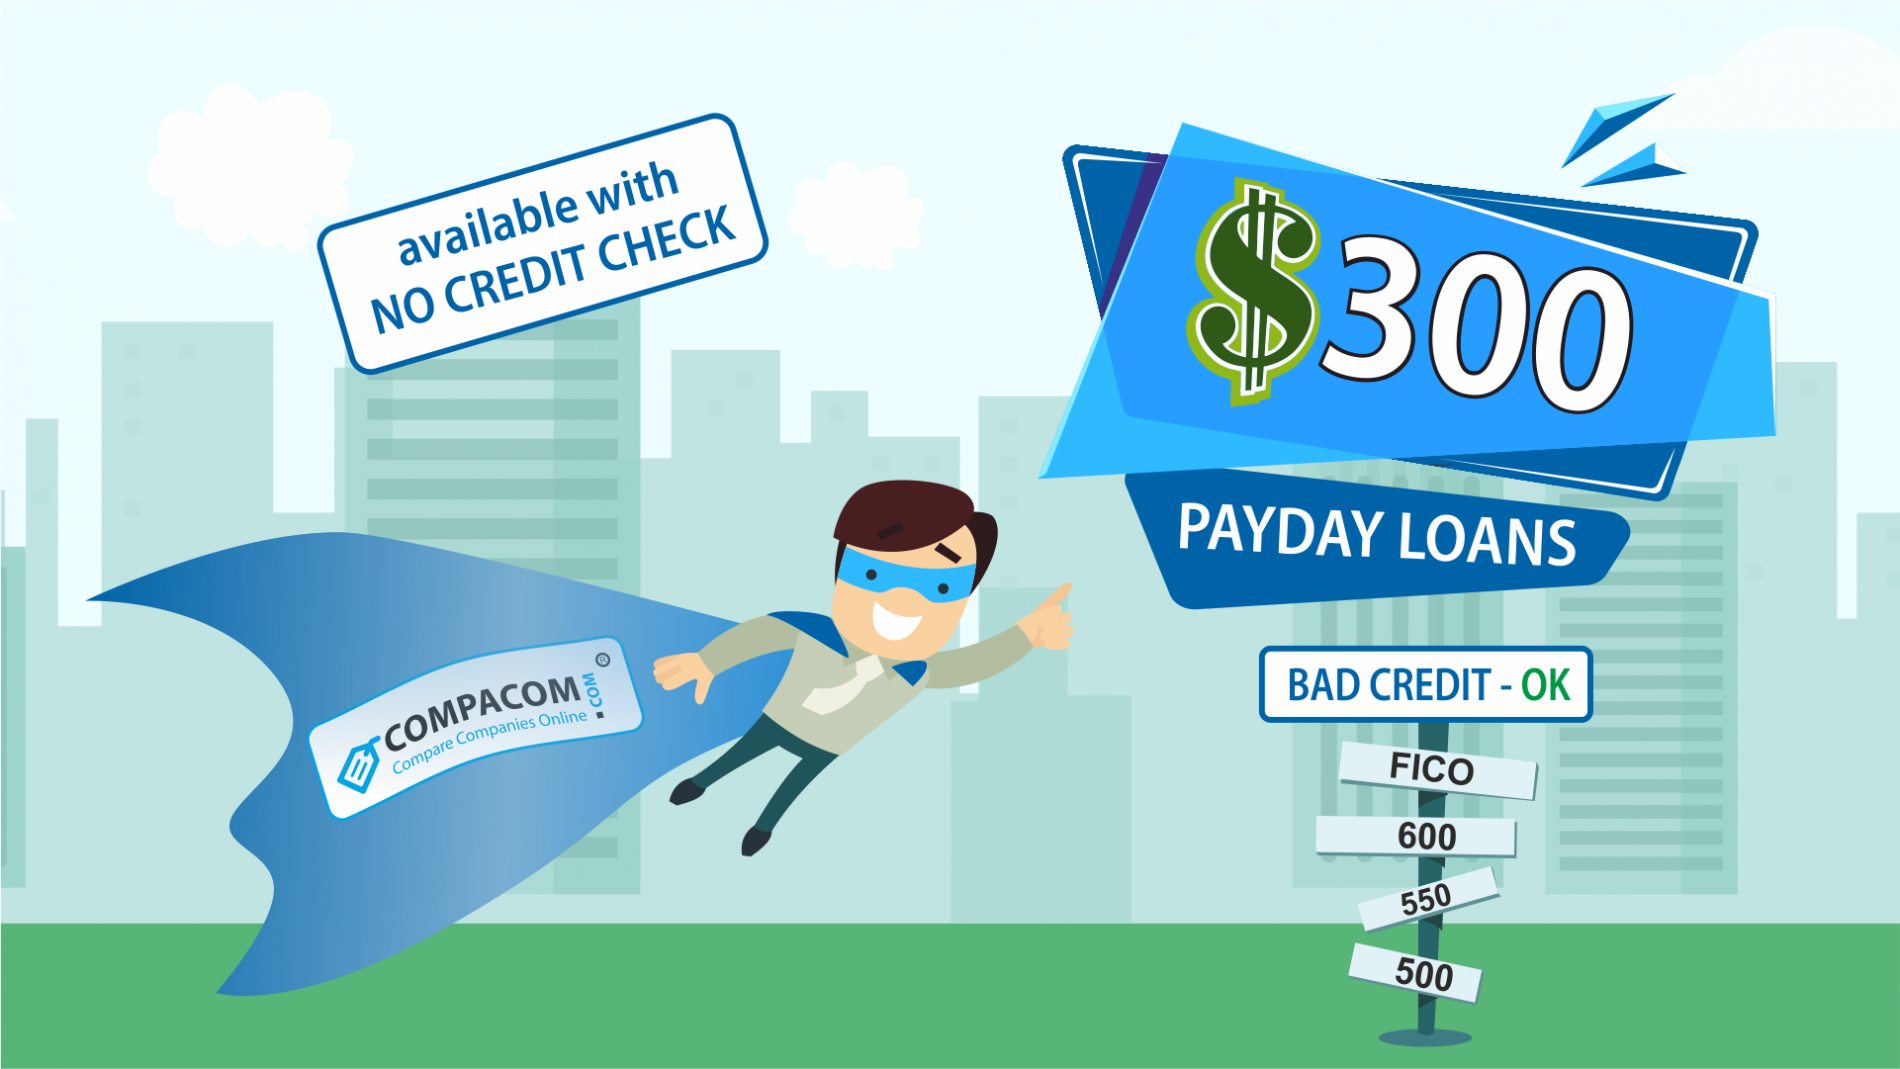 $300 dollar Payday loans are short-term unsecured cash advances available for people with bad credit. One can get approved for a $300 Loan online or in a store woth no credit check done.